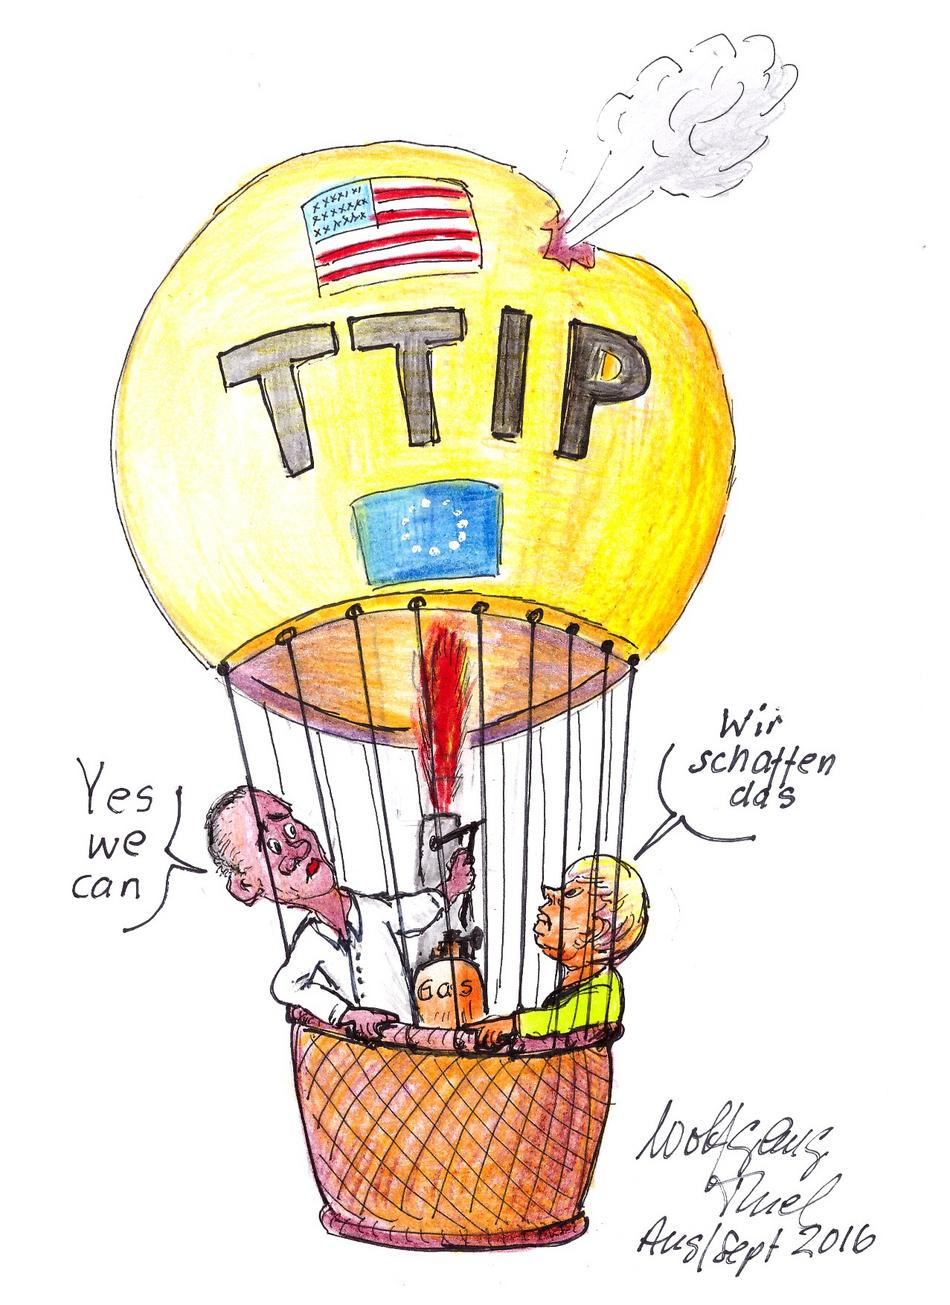 TTIP Yes we can 2016.jpg